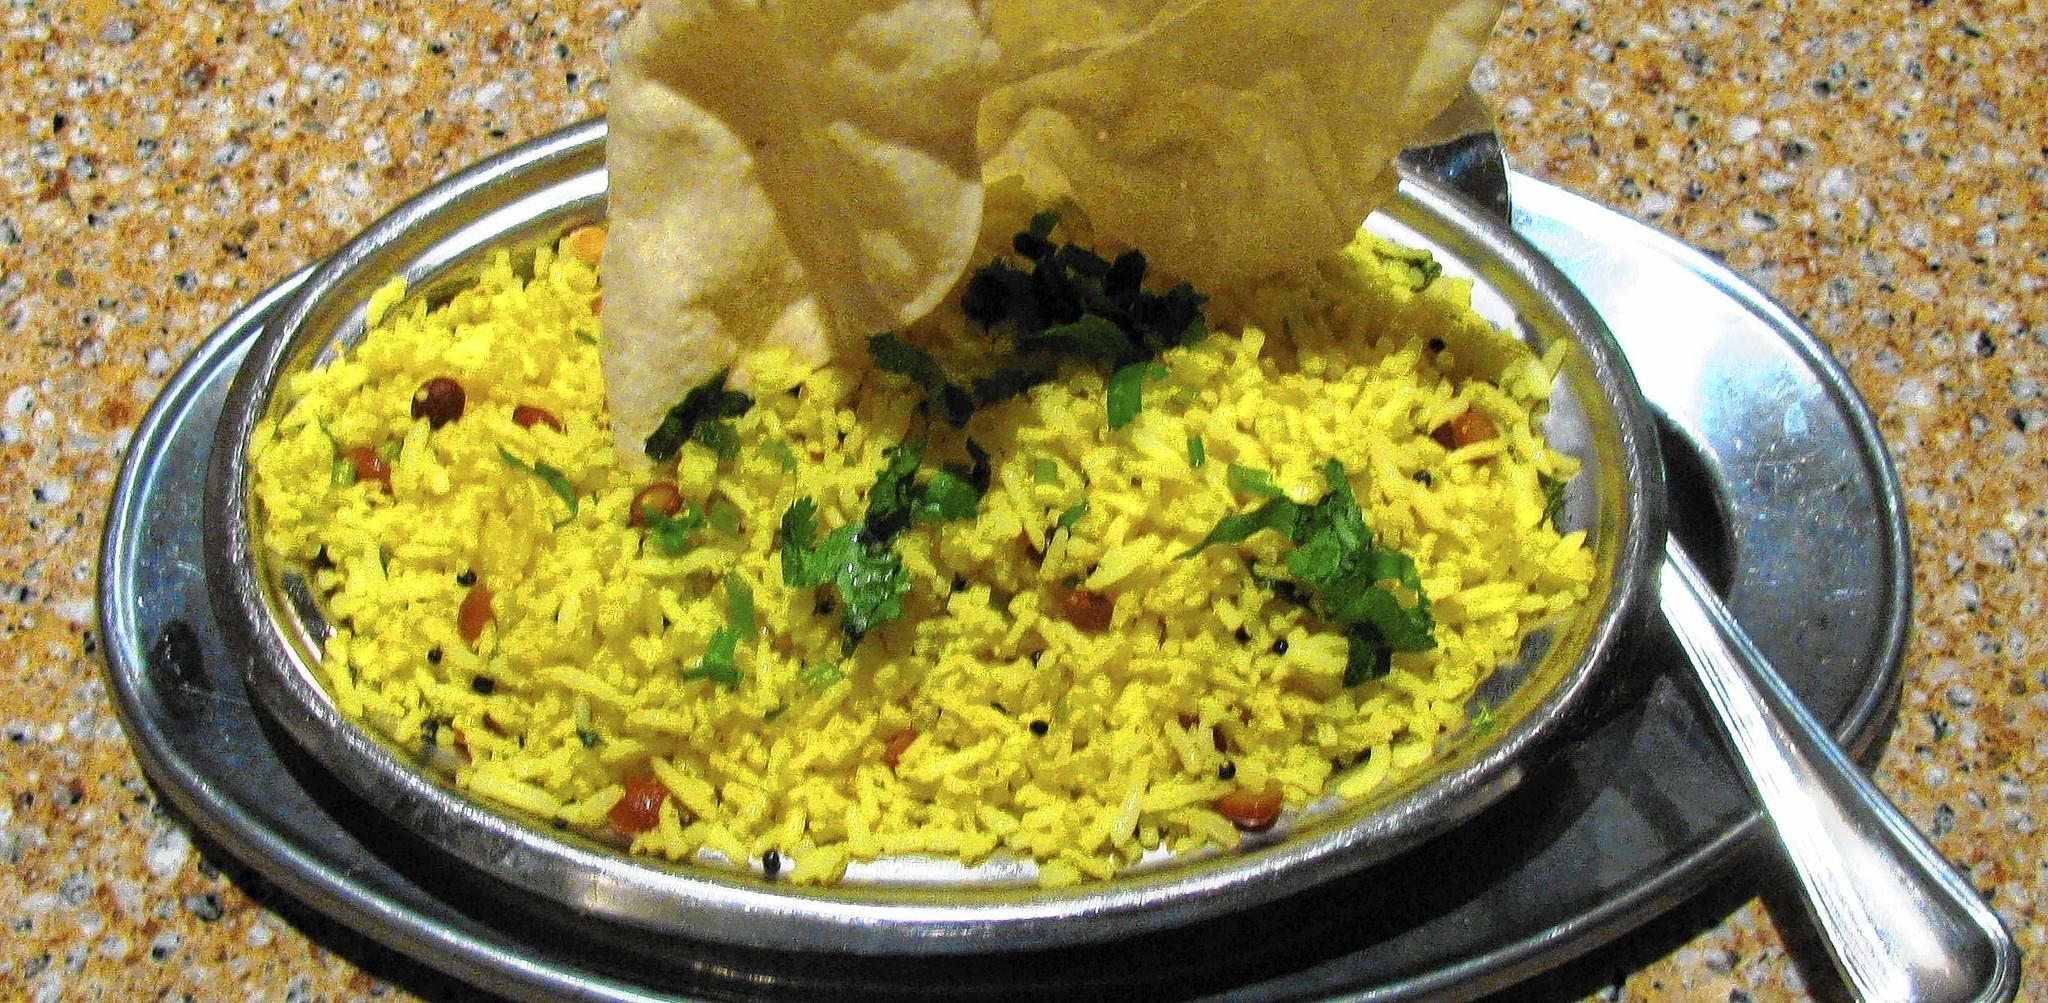 The lemon saddam rice is buttery and lemony, with a contrasting texture of toasted cashews and fried lentils.